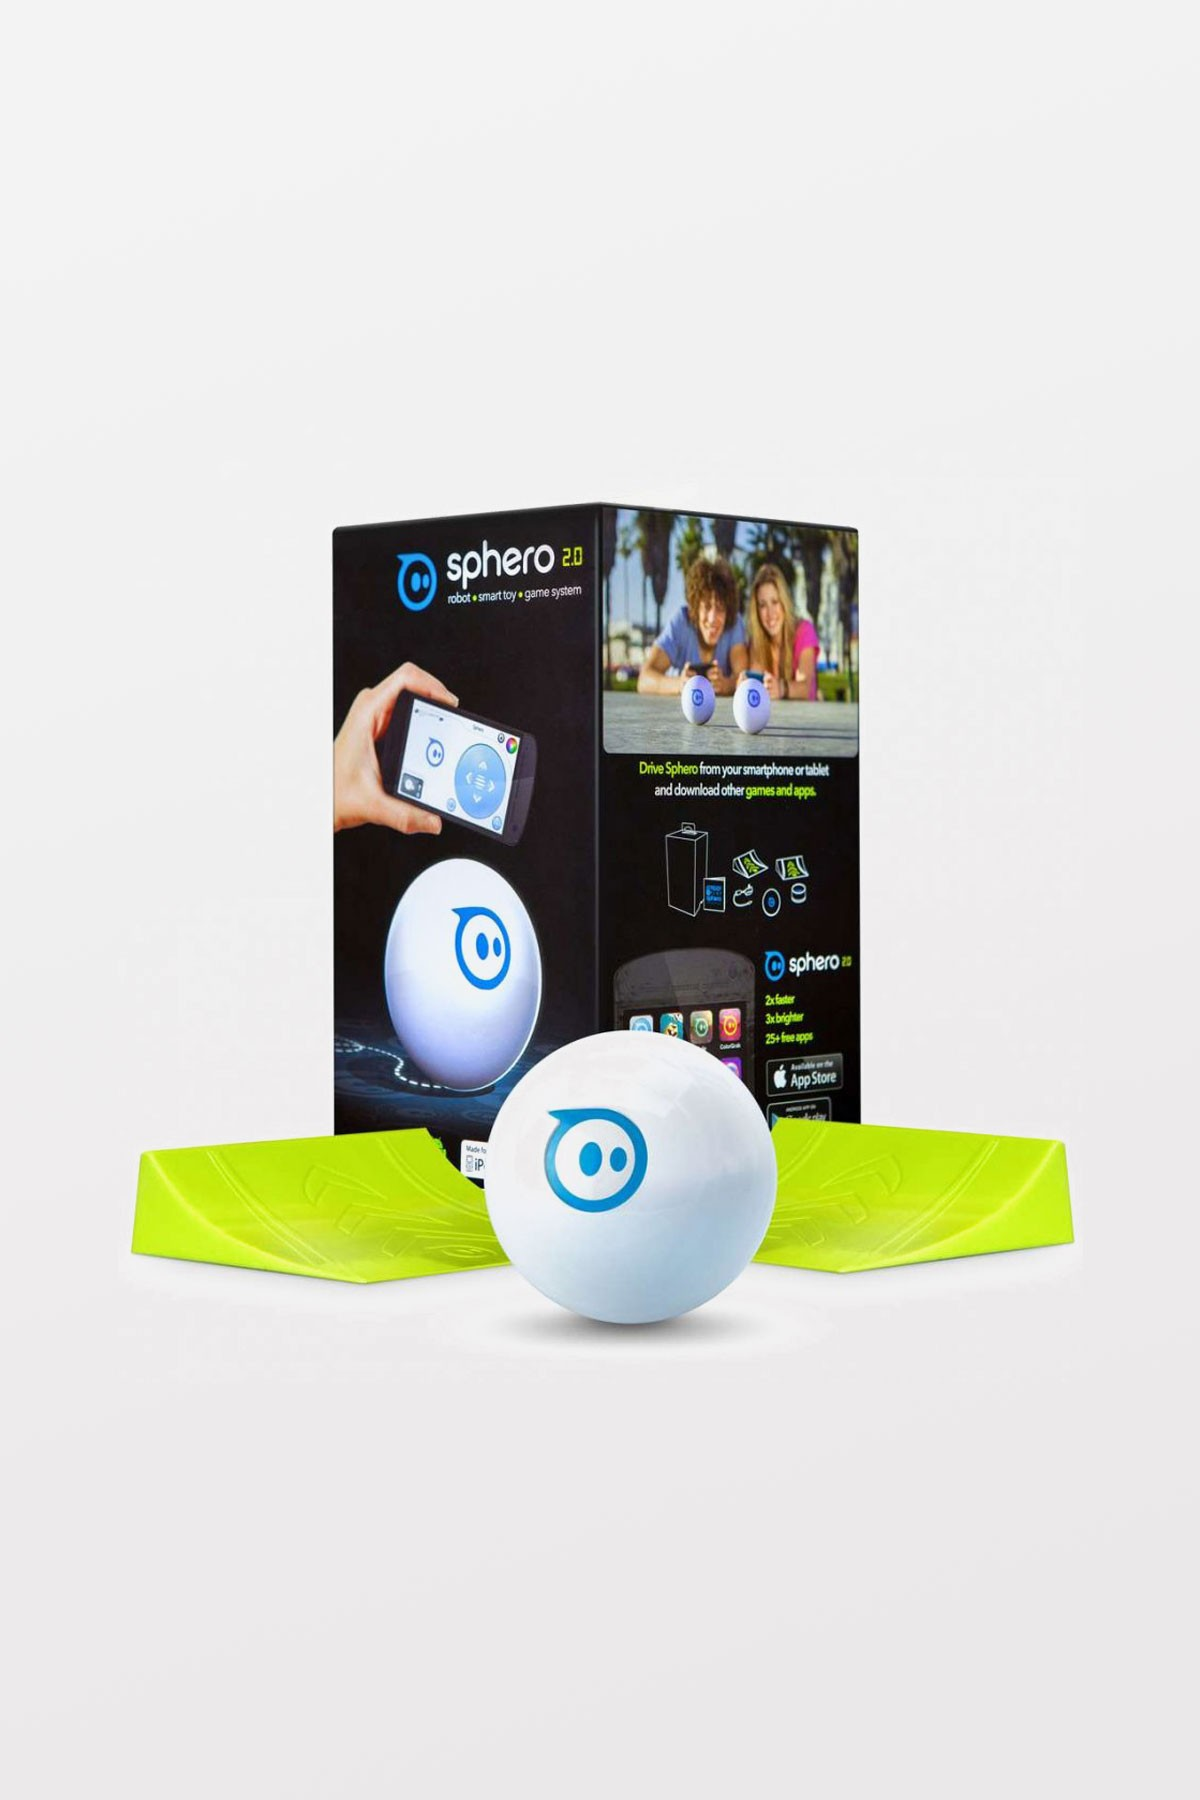 Sphero 2.0 - The App Enabled Ball